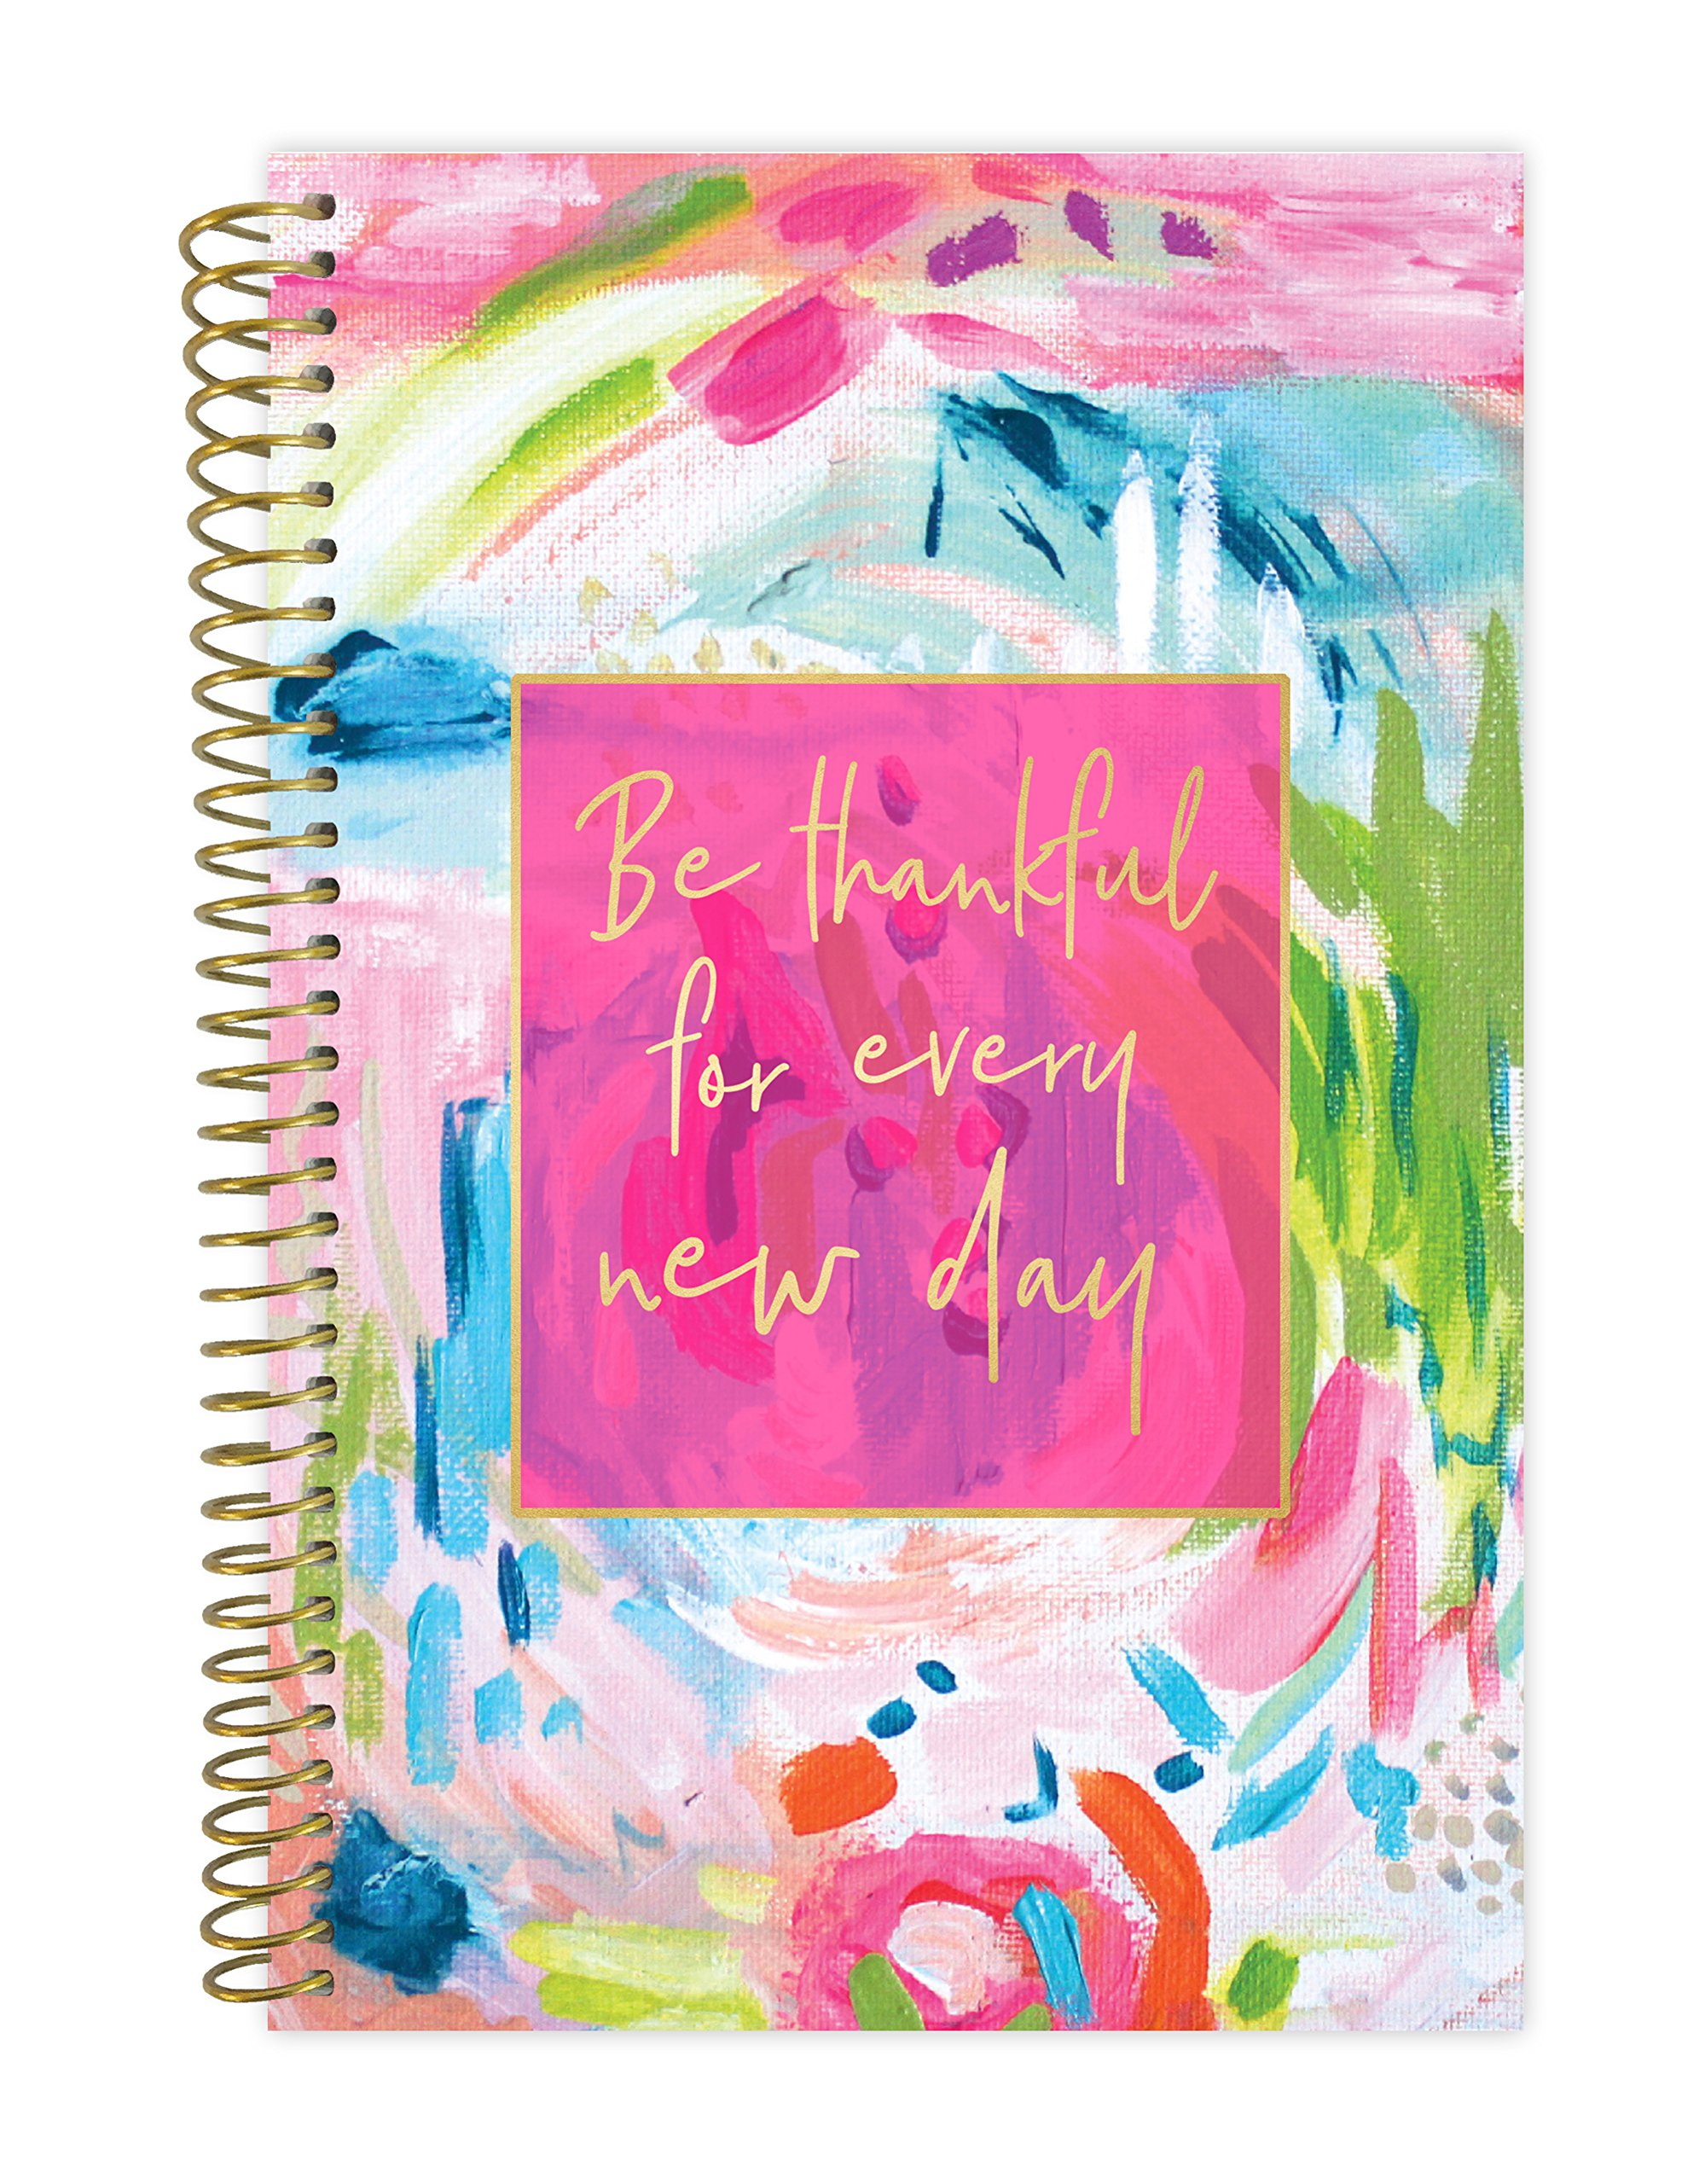 bloom daily planners 2018-2019 Academic Year Day Planner - Monthly and Weekly Datebook/Calendar Book - Inspirational Dated Agenda Organizer - (August 2018 - July 2019) - 6'' x 8.25'' - Cleerely Stated